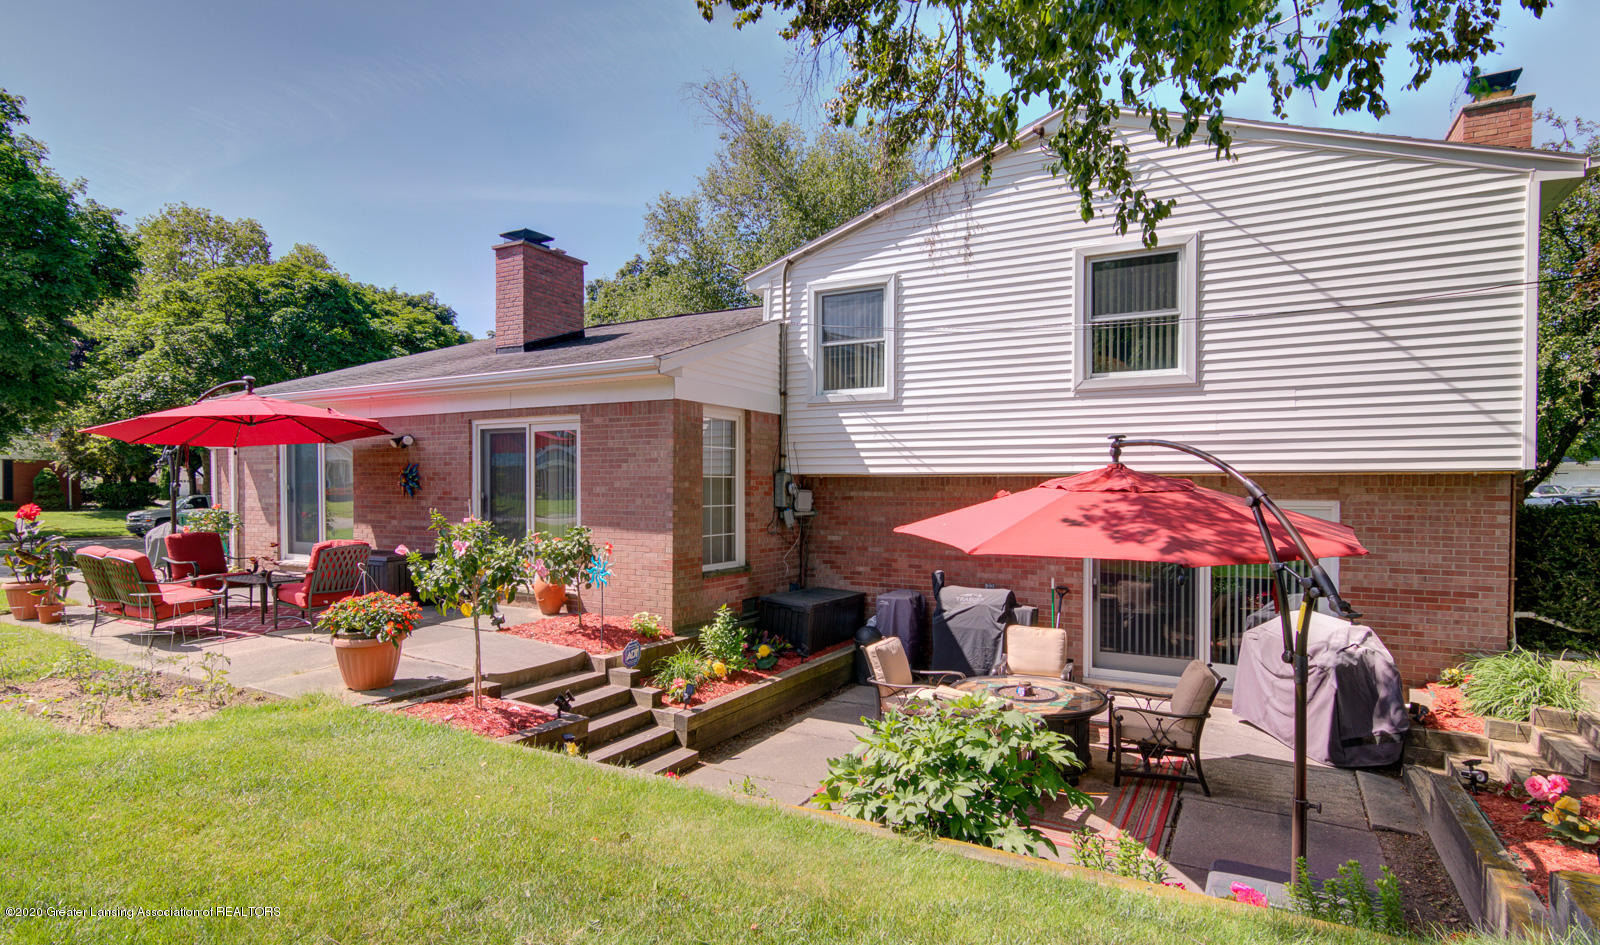 3800 Colchester Rd - 3800 Colchester Rd-13 - 35